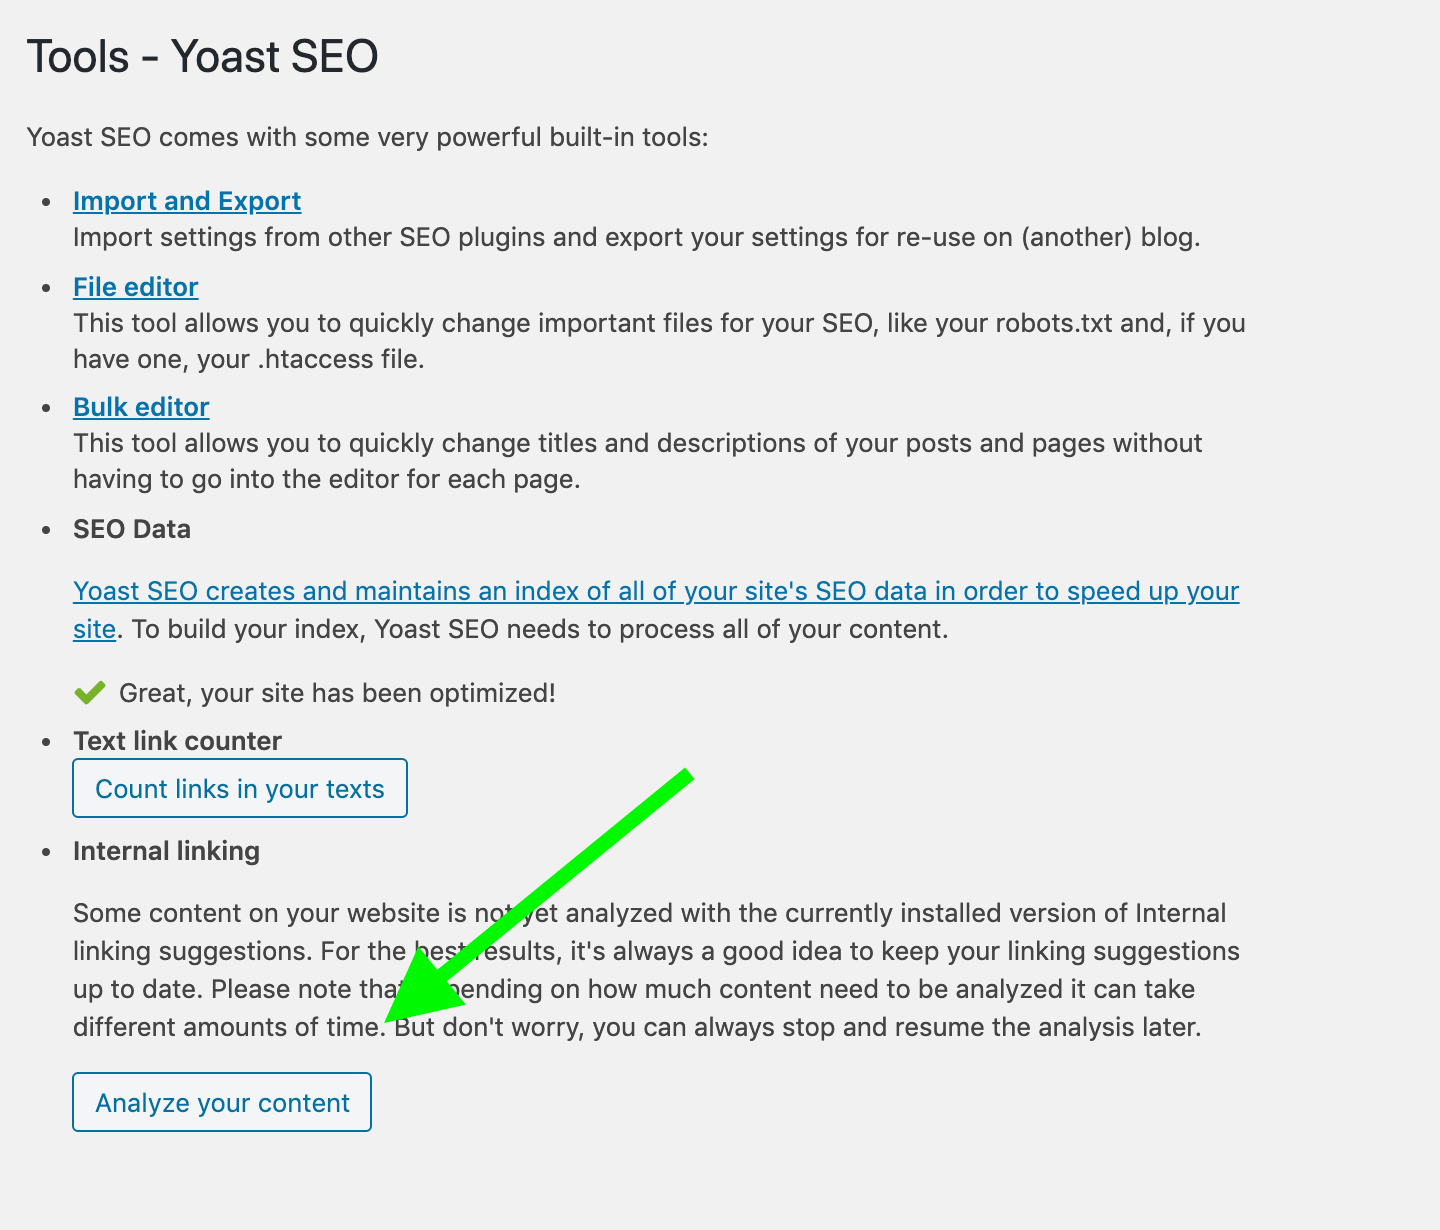 When you first upgrade to Yoast SEO Premium, you'll see a notification calling you to allow Yoast to analyze your content.